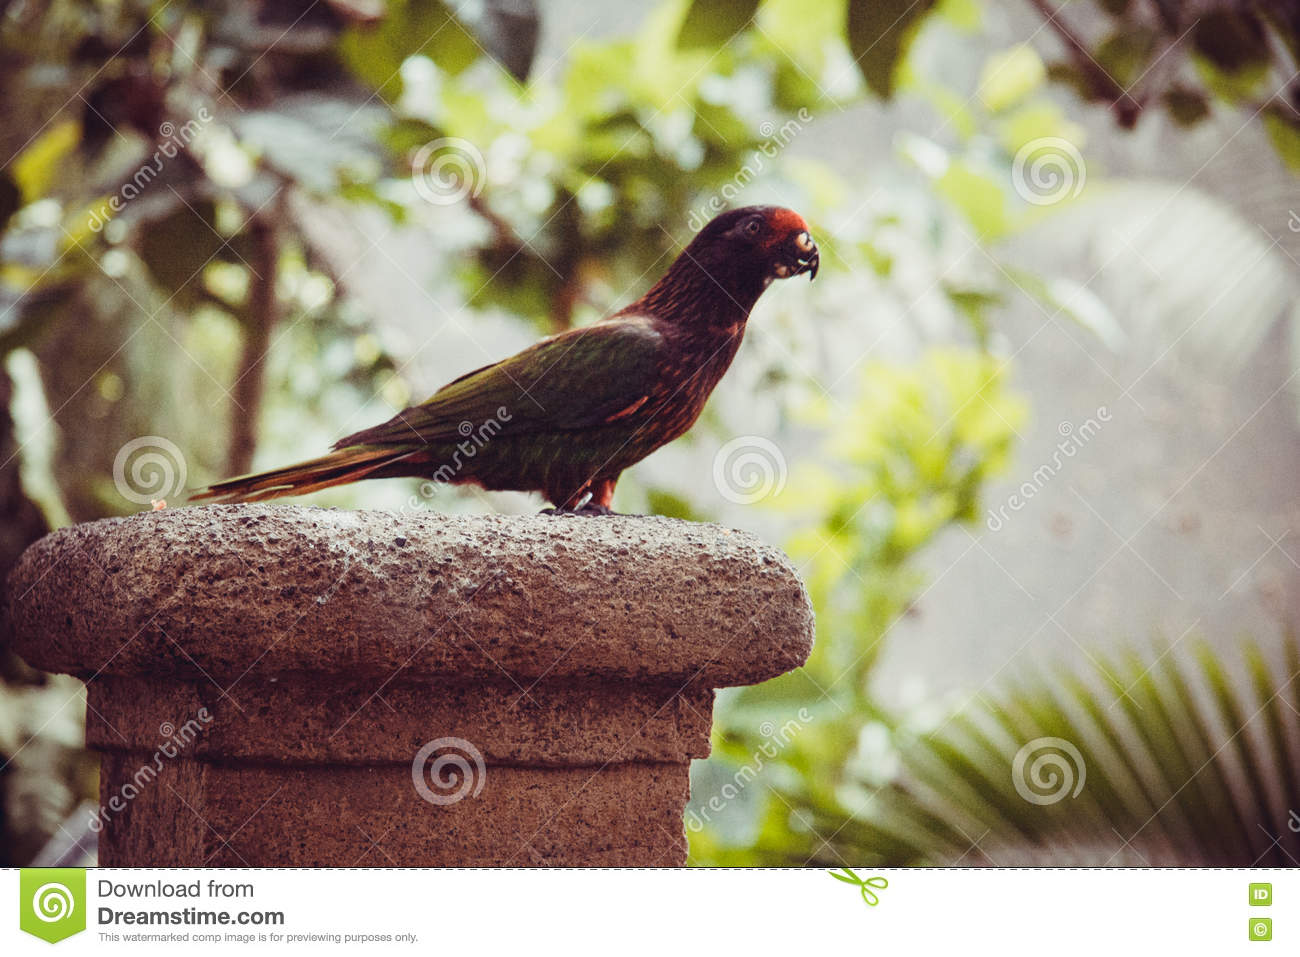 Wildlife In Bali Birds And Reptiles Park Stock Photo Image Of